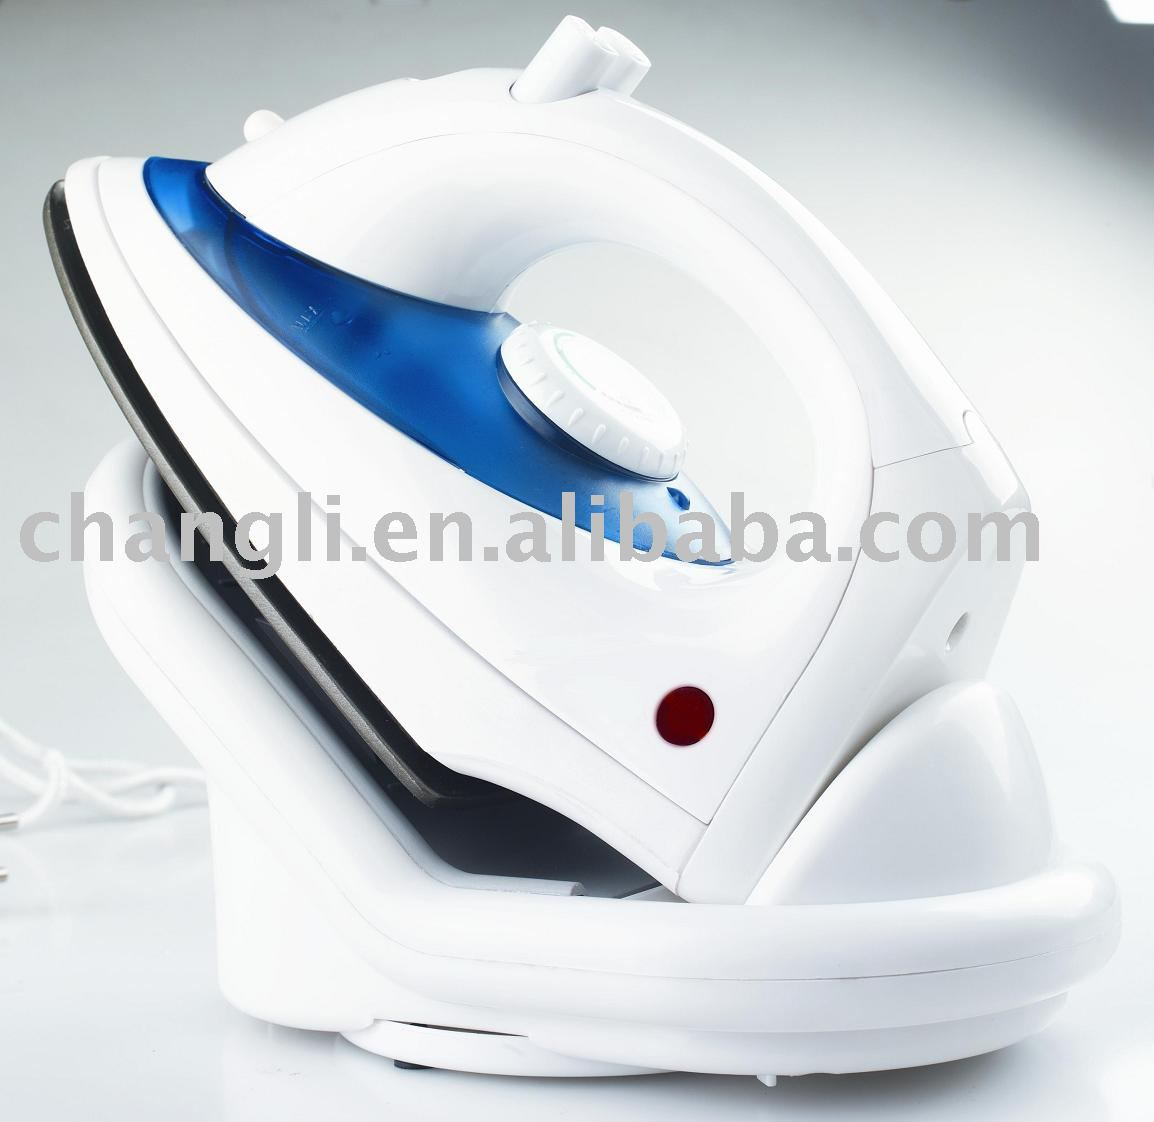 Cordless Steam Iron ~ Cordless steam iron buy stock